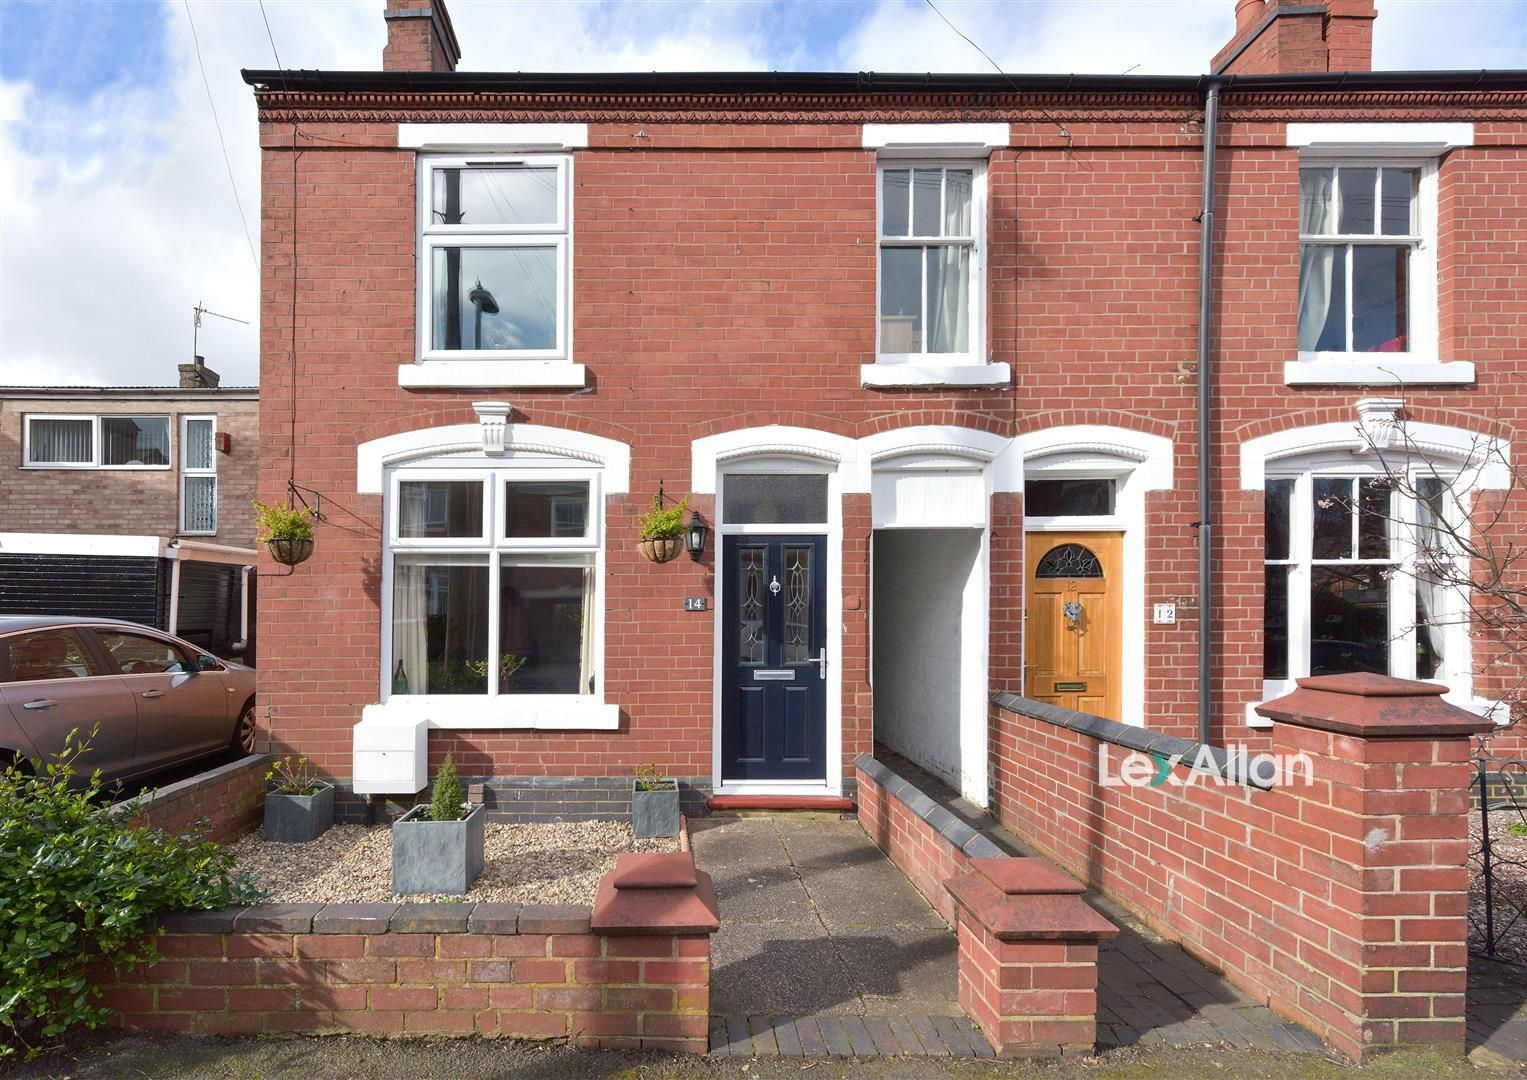 3 bed end-of-terrace for sale - Property Image 1